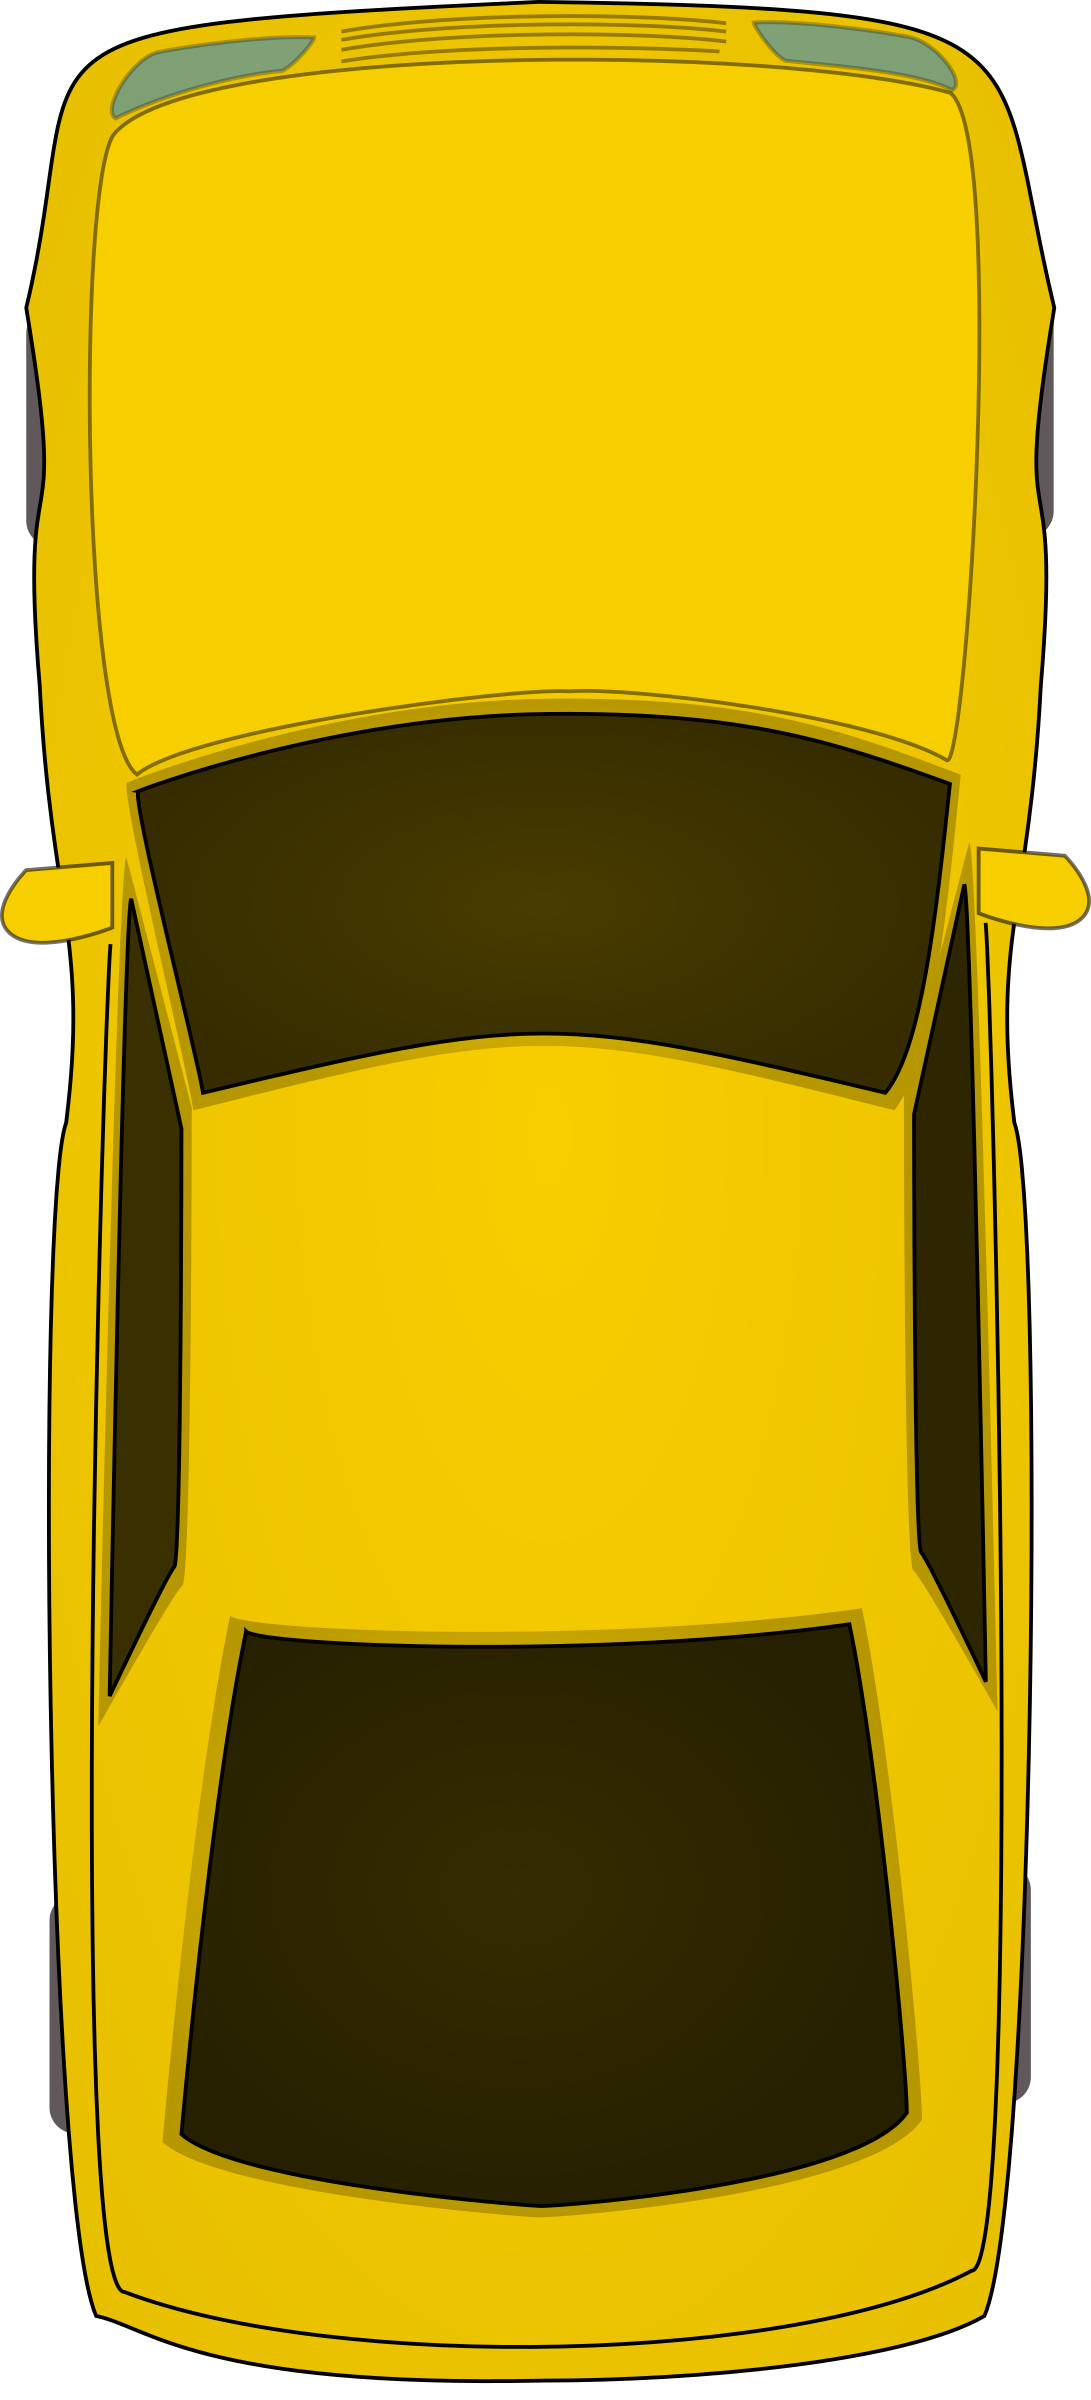 Clipart chair top view. Car big image png